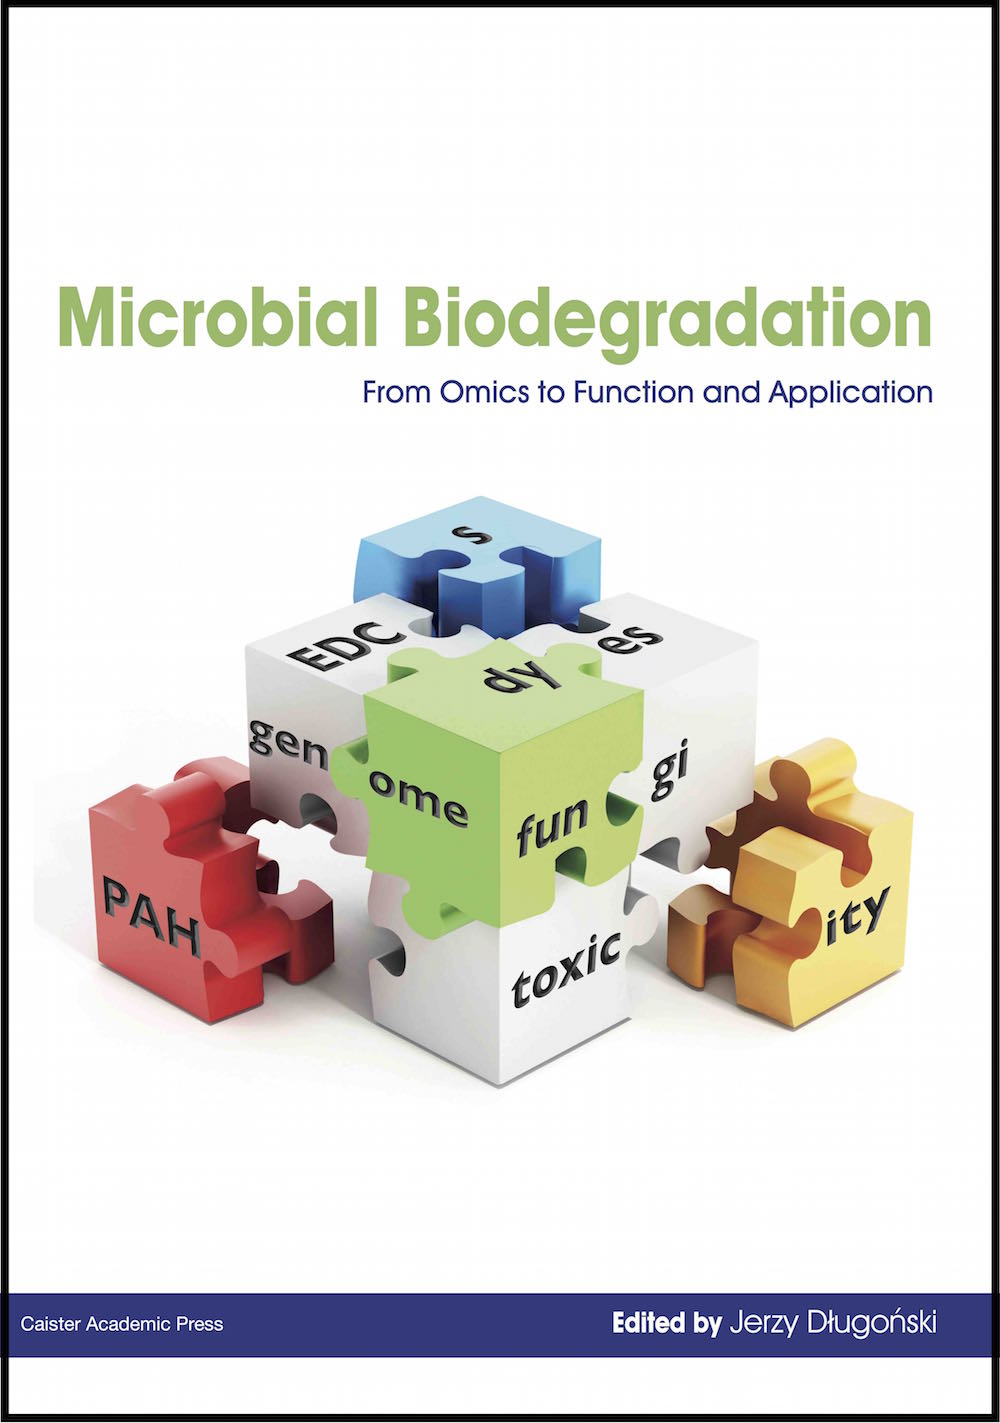 Microbial Biodegradation book